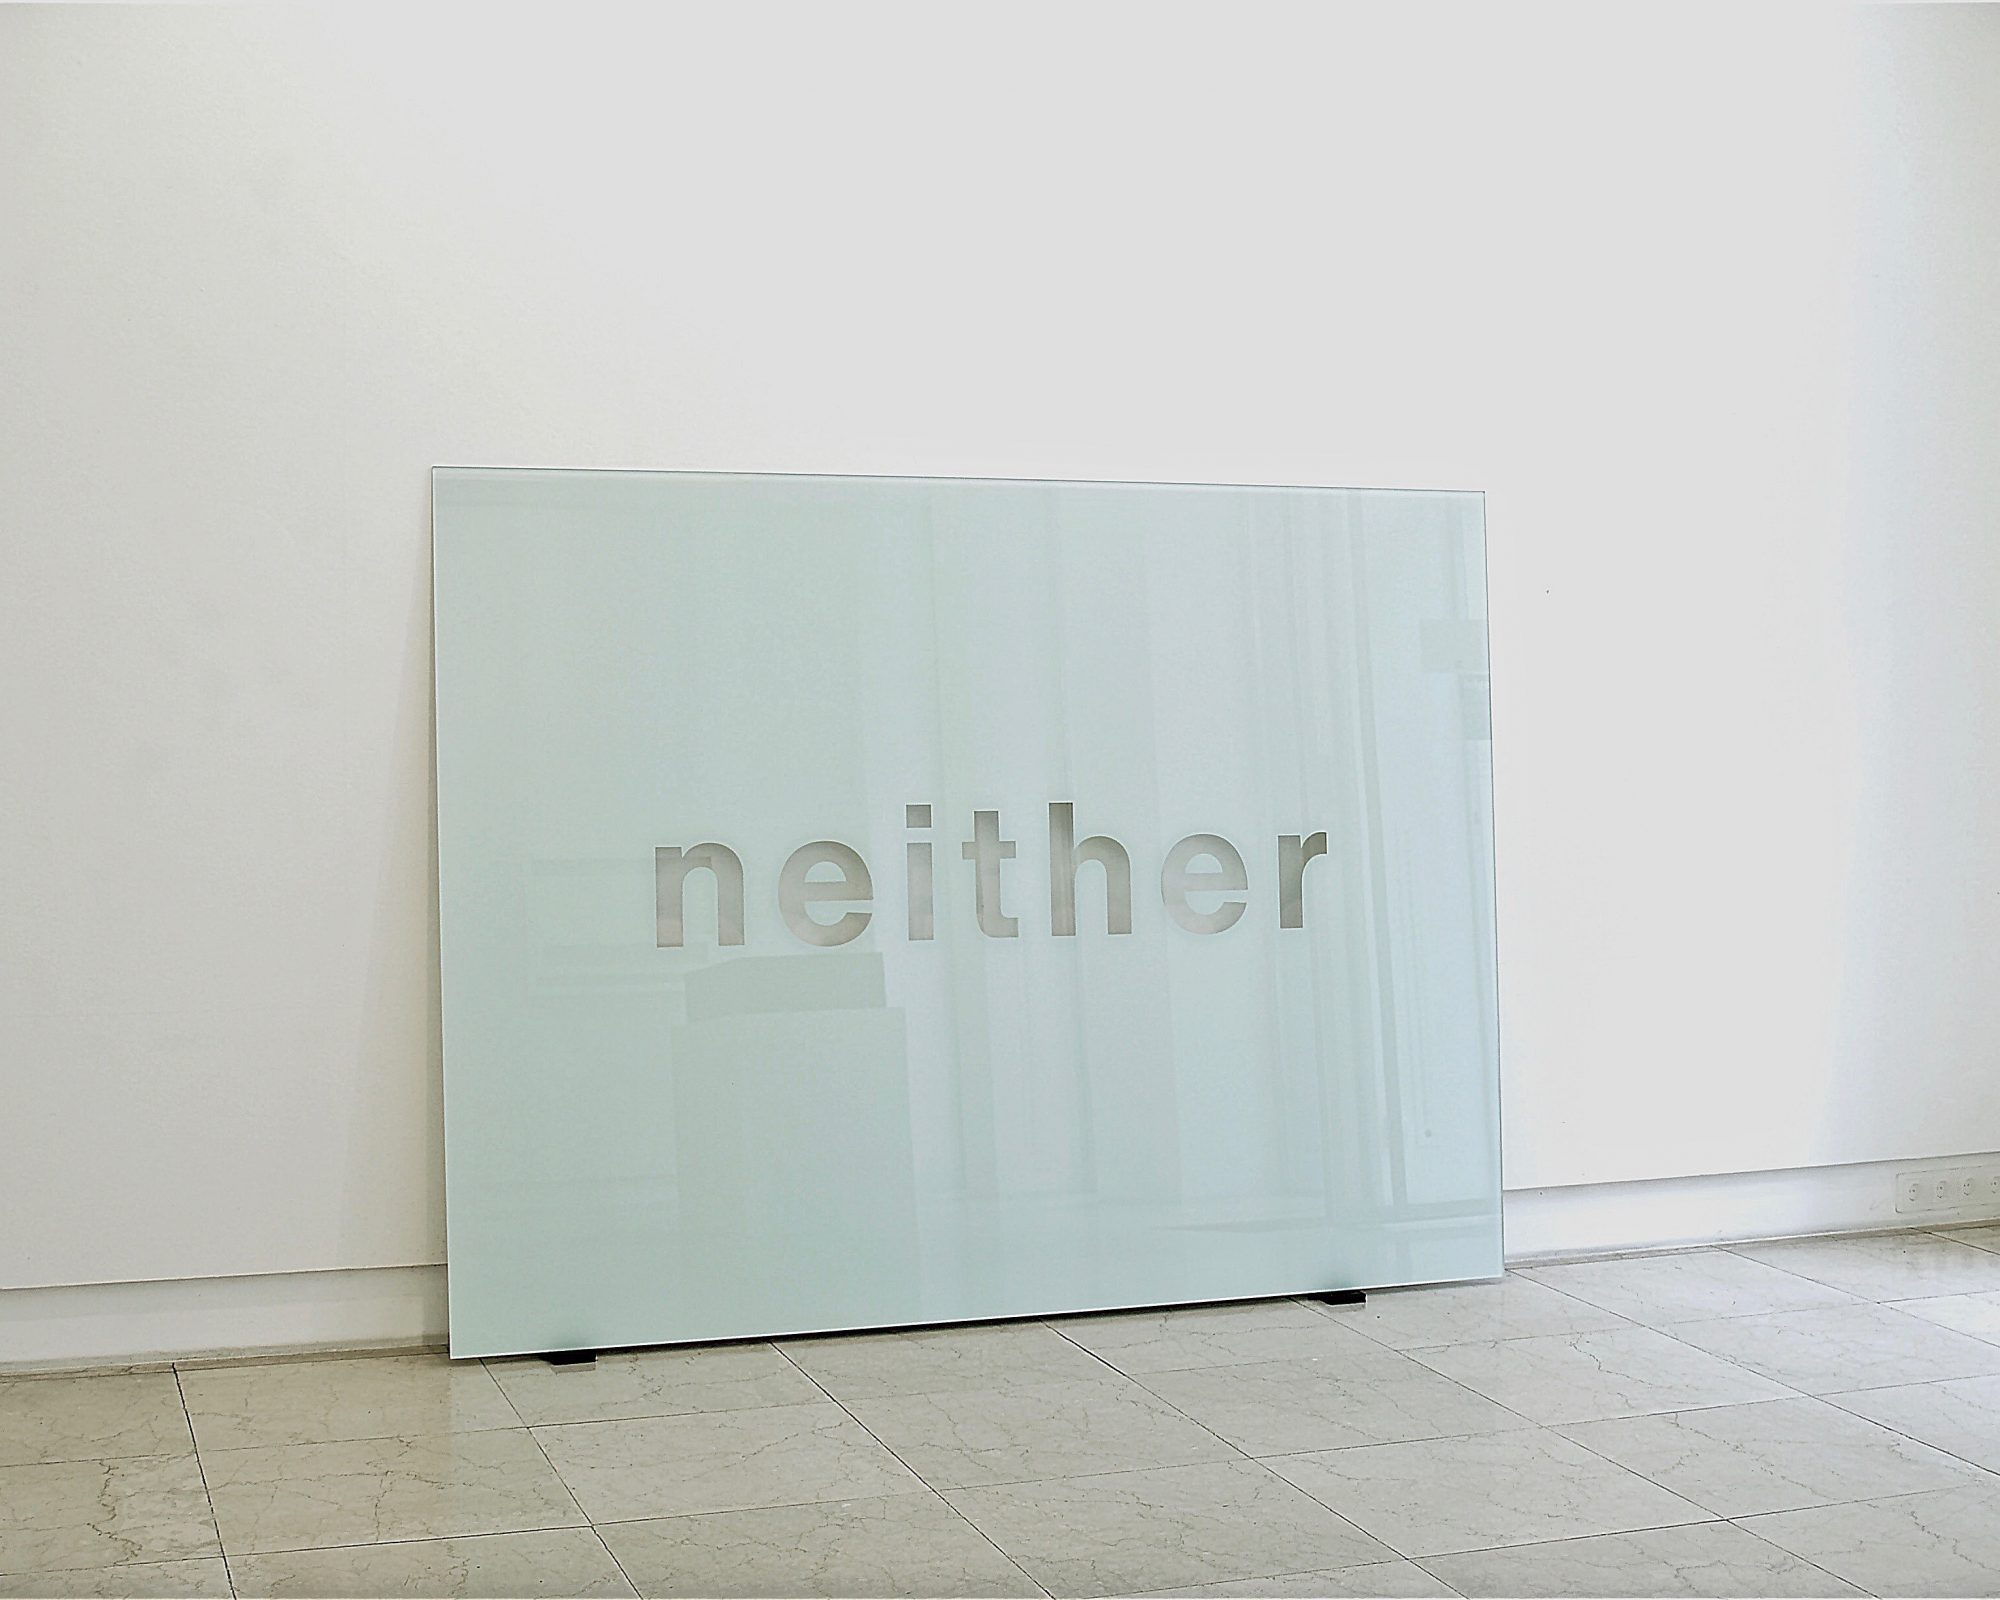 Neither, 2005, Hinterglasmalerei / reverse glass painting, 150x200cm